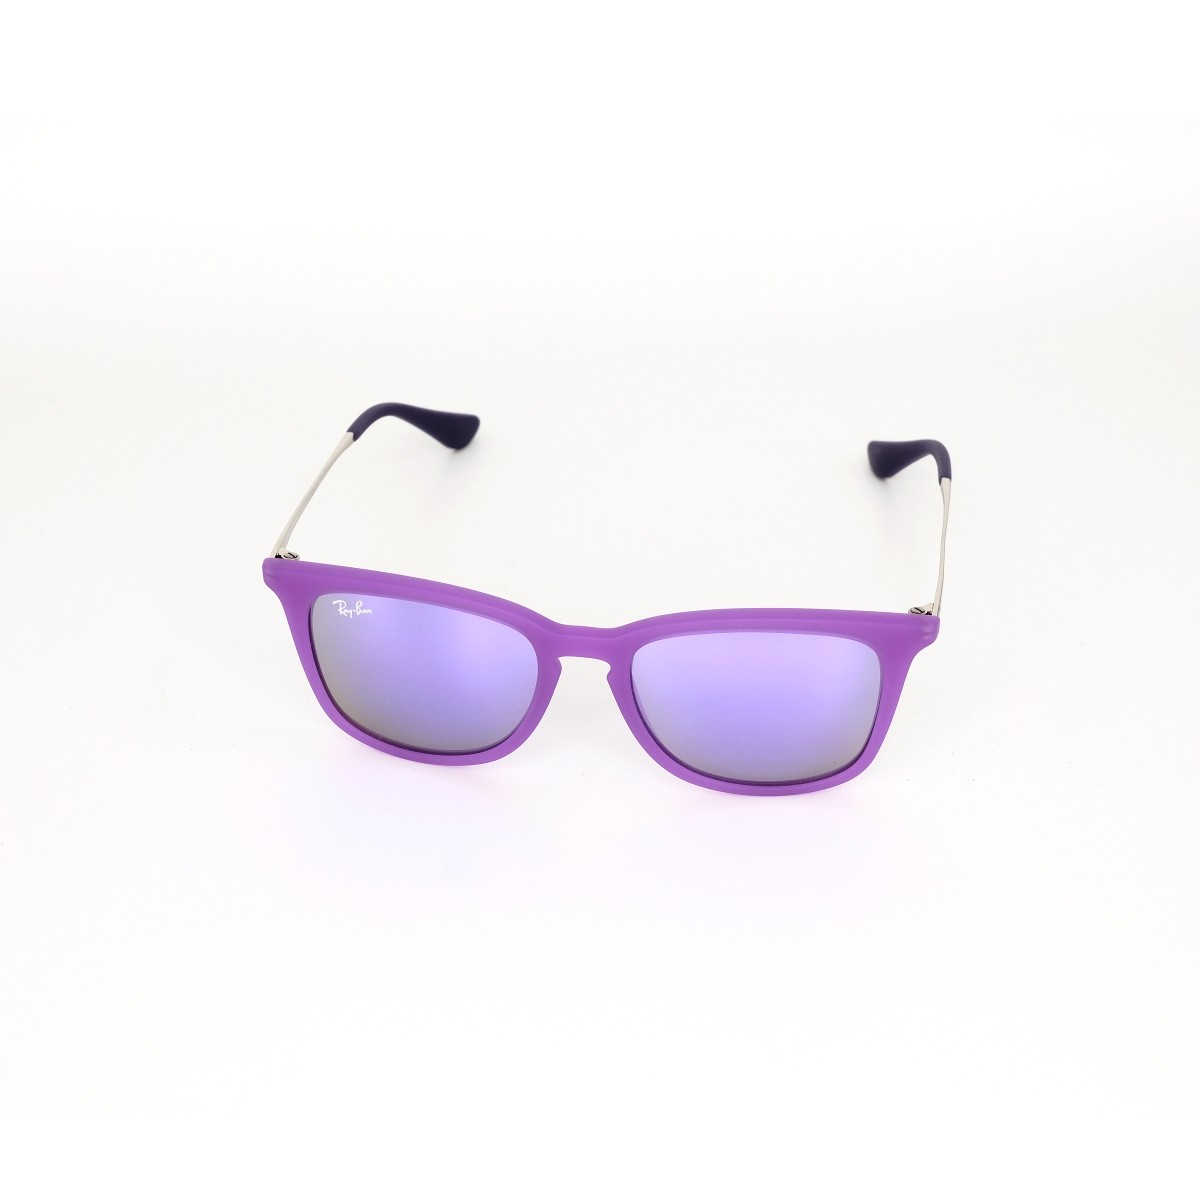 Ray Ban Junior 9063 7008/4V, 60,00 €, Occhiali Ray Ban Junior Viola a forma Squadrato